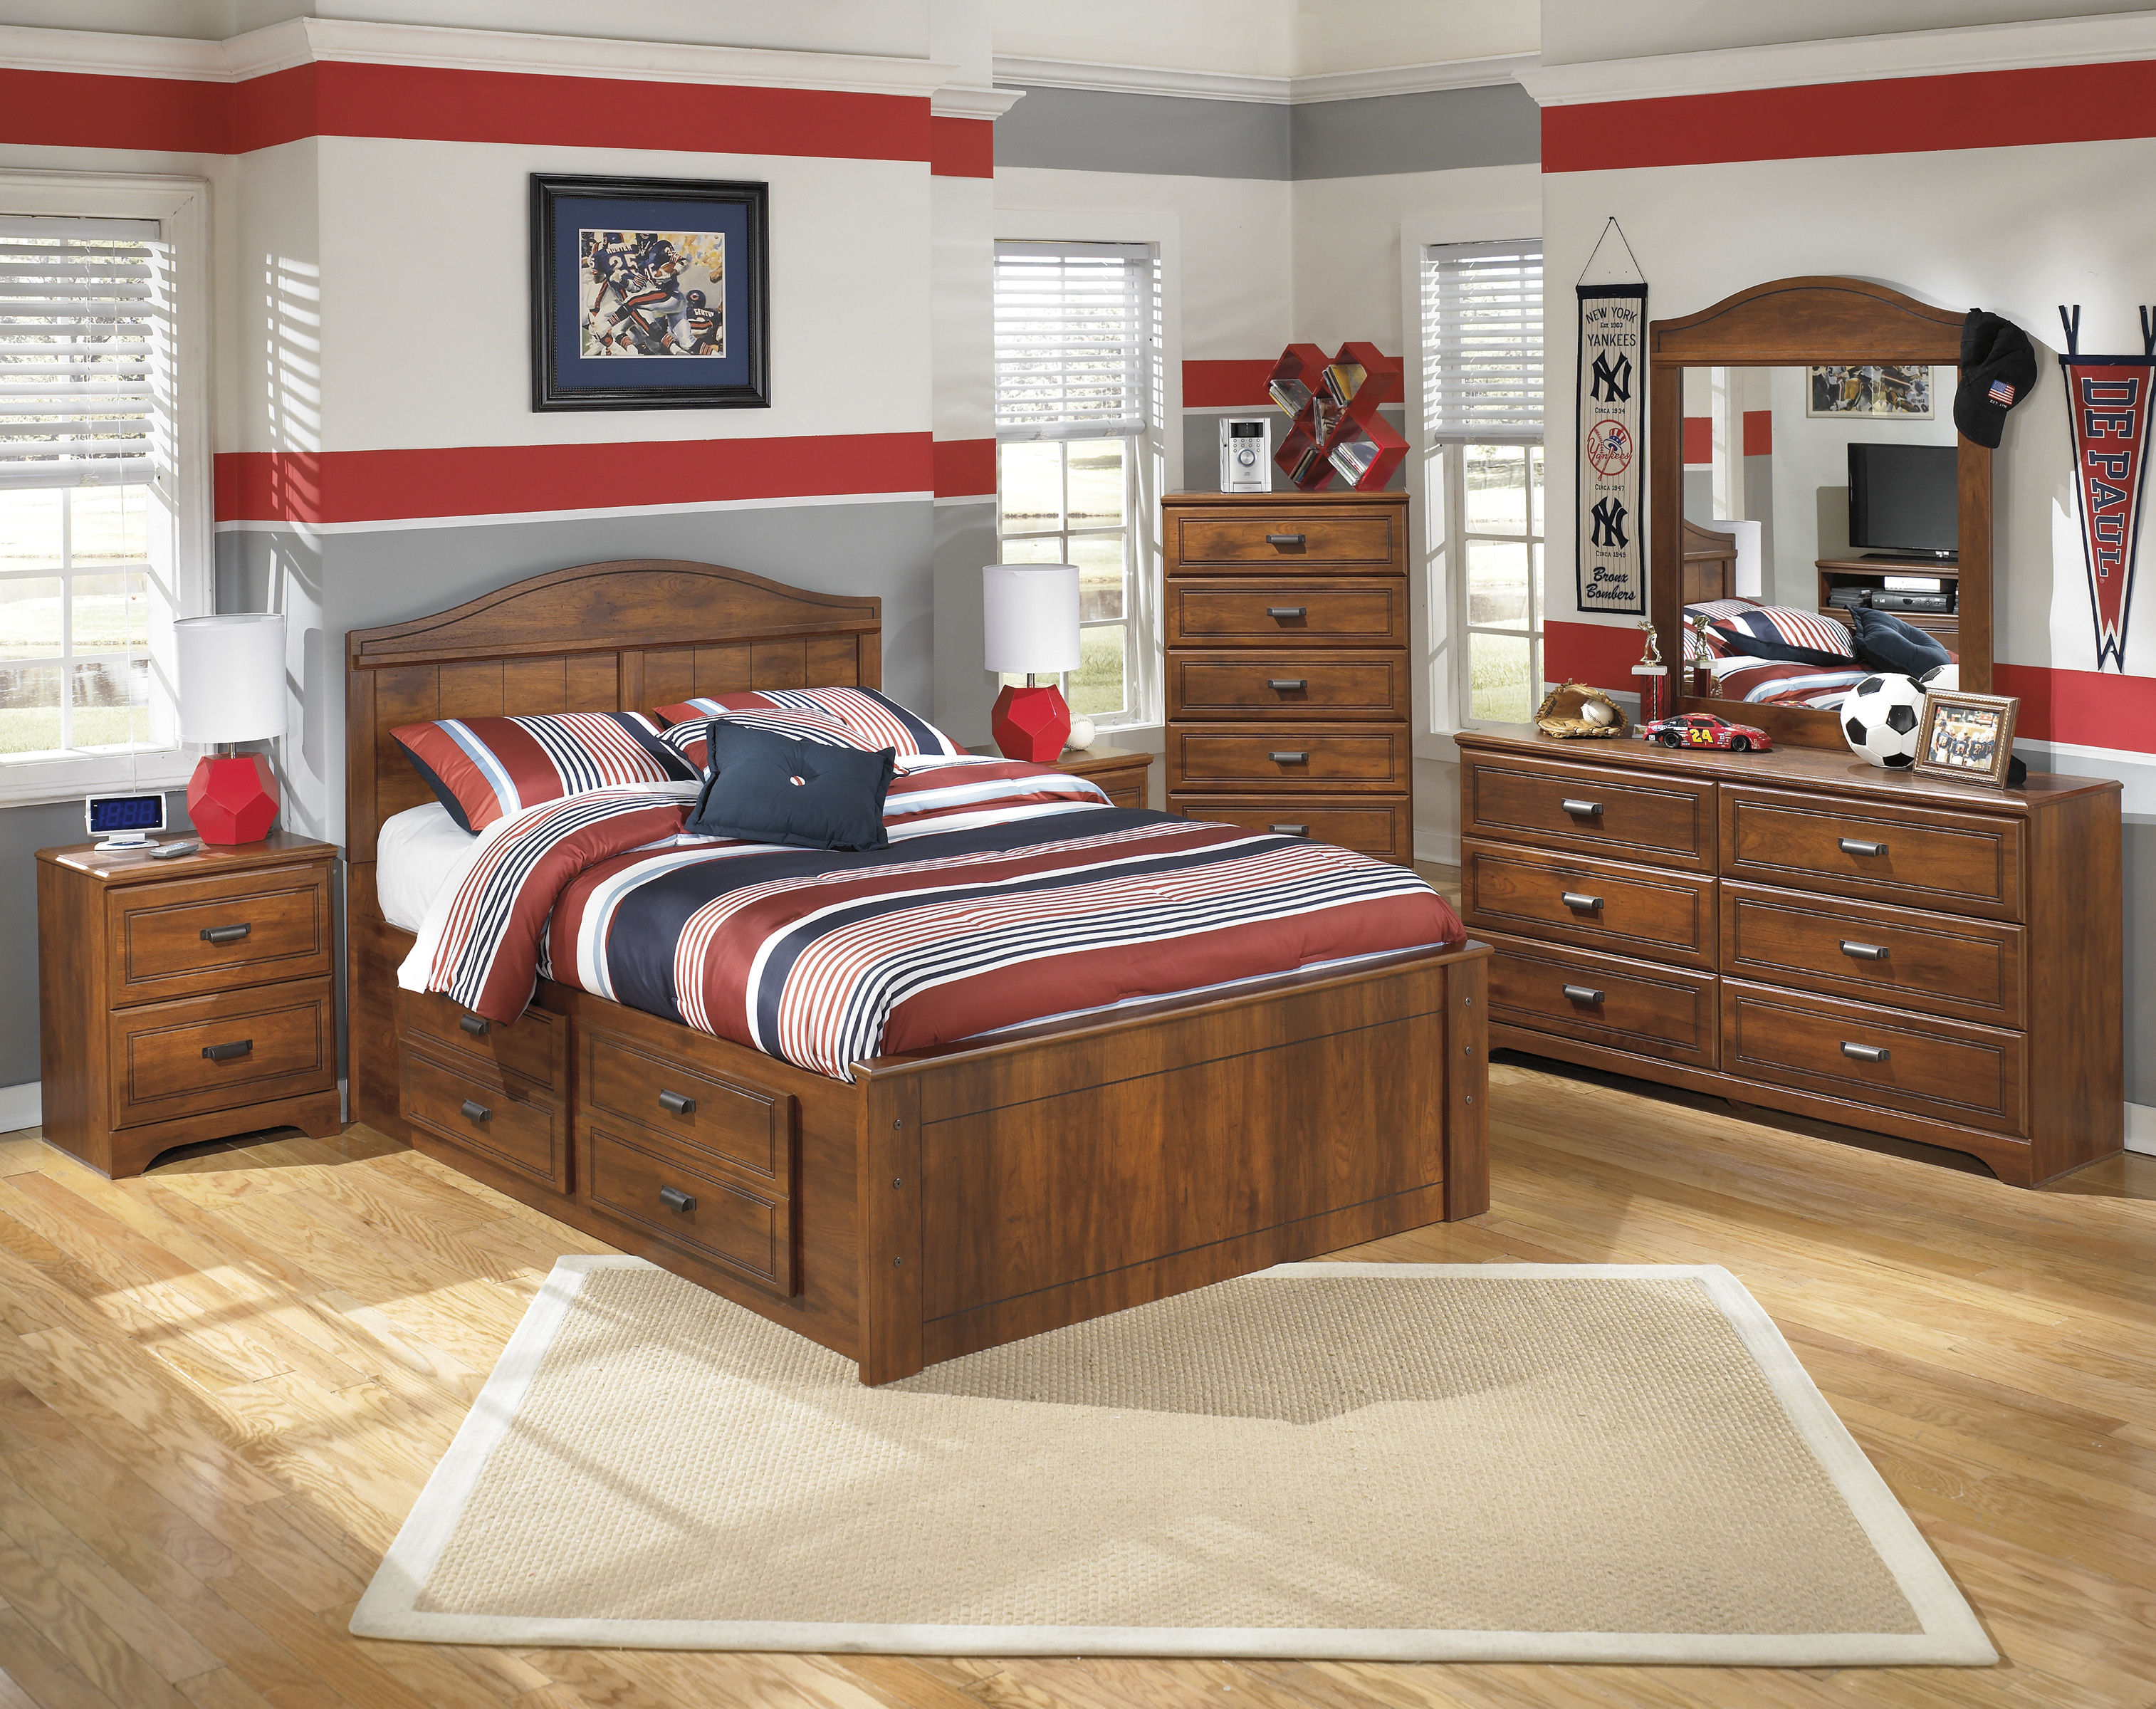 ashley furniture barchan 2pc bedroom set with full under